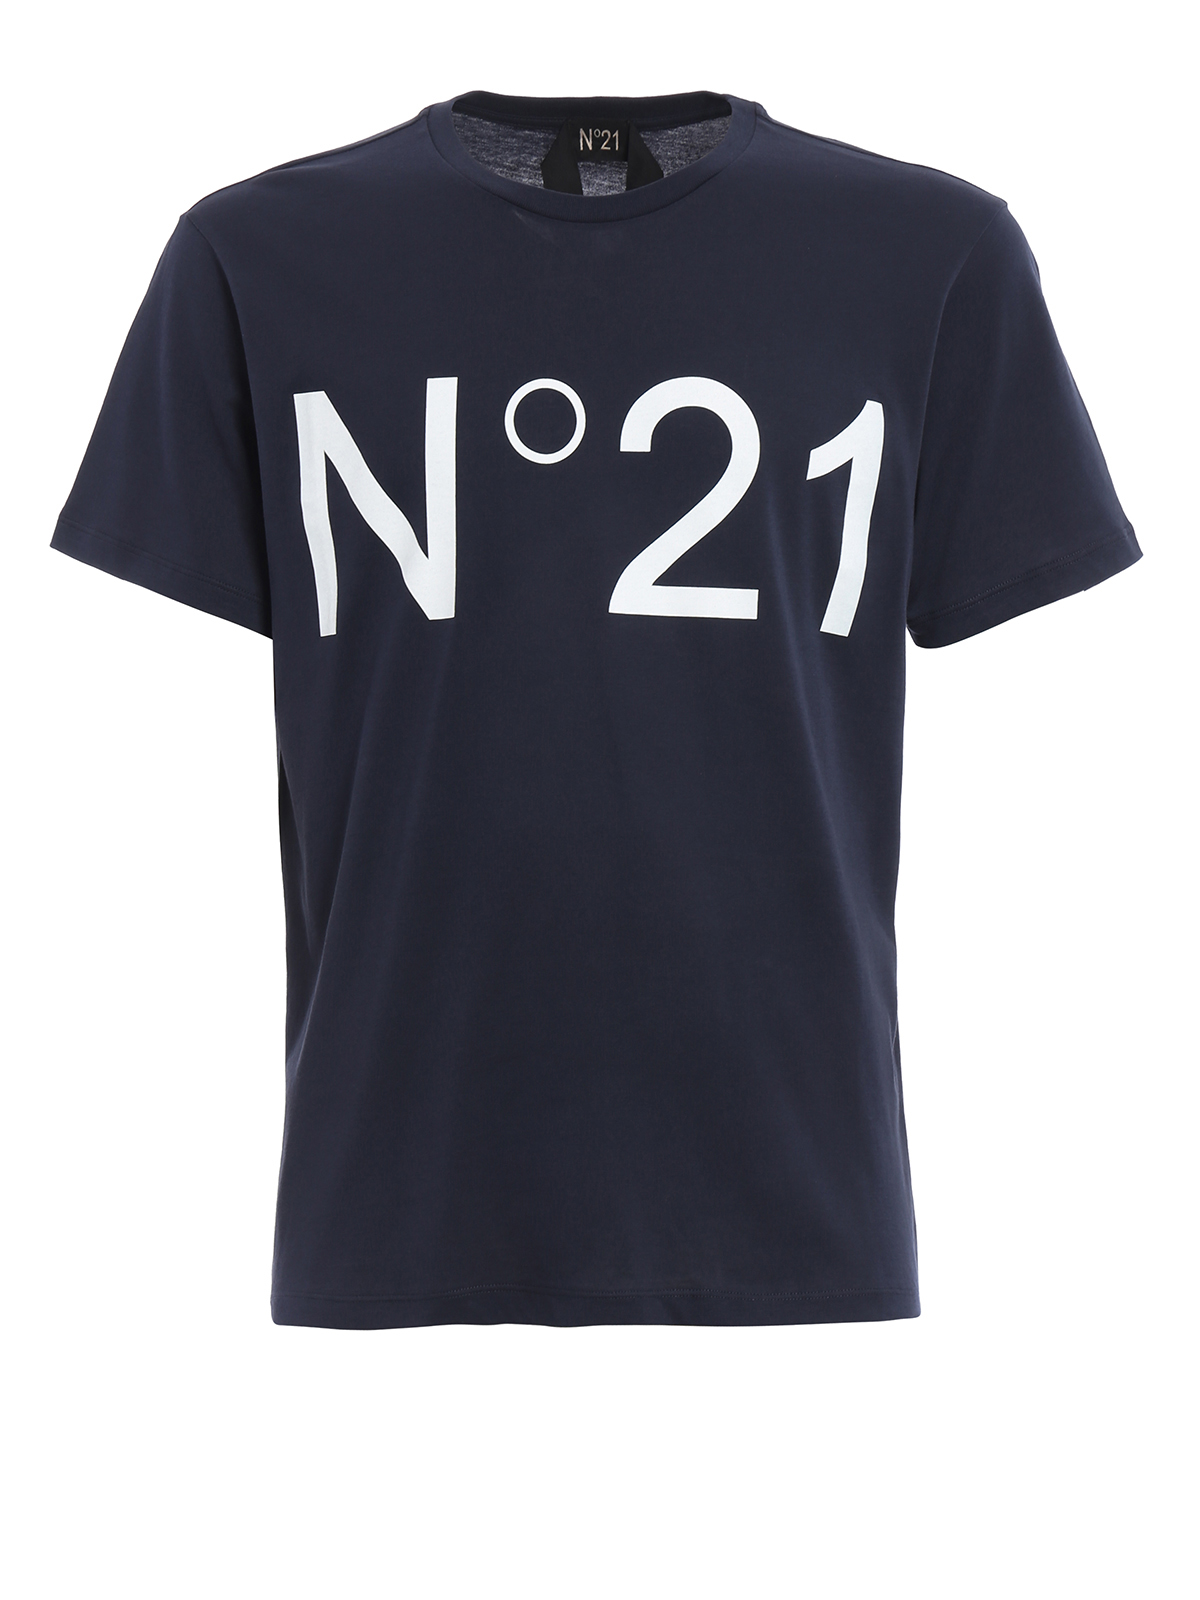 Logo print cotton tee by n 21 t shirts ikrix for Shirts with logo print